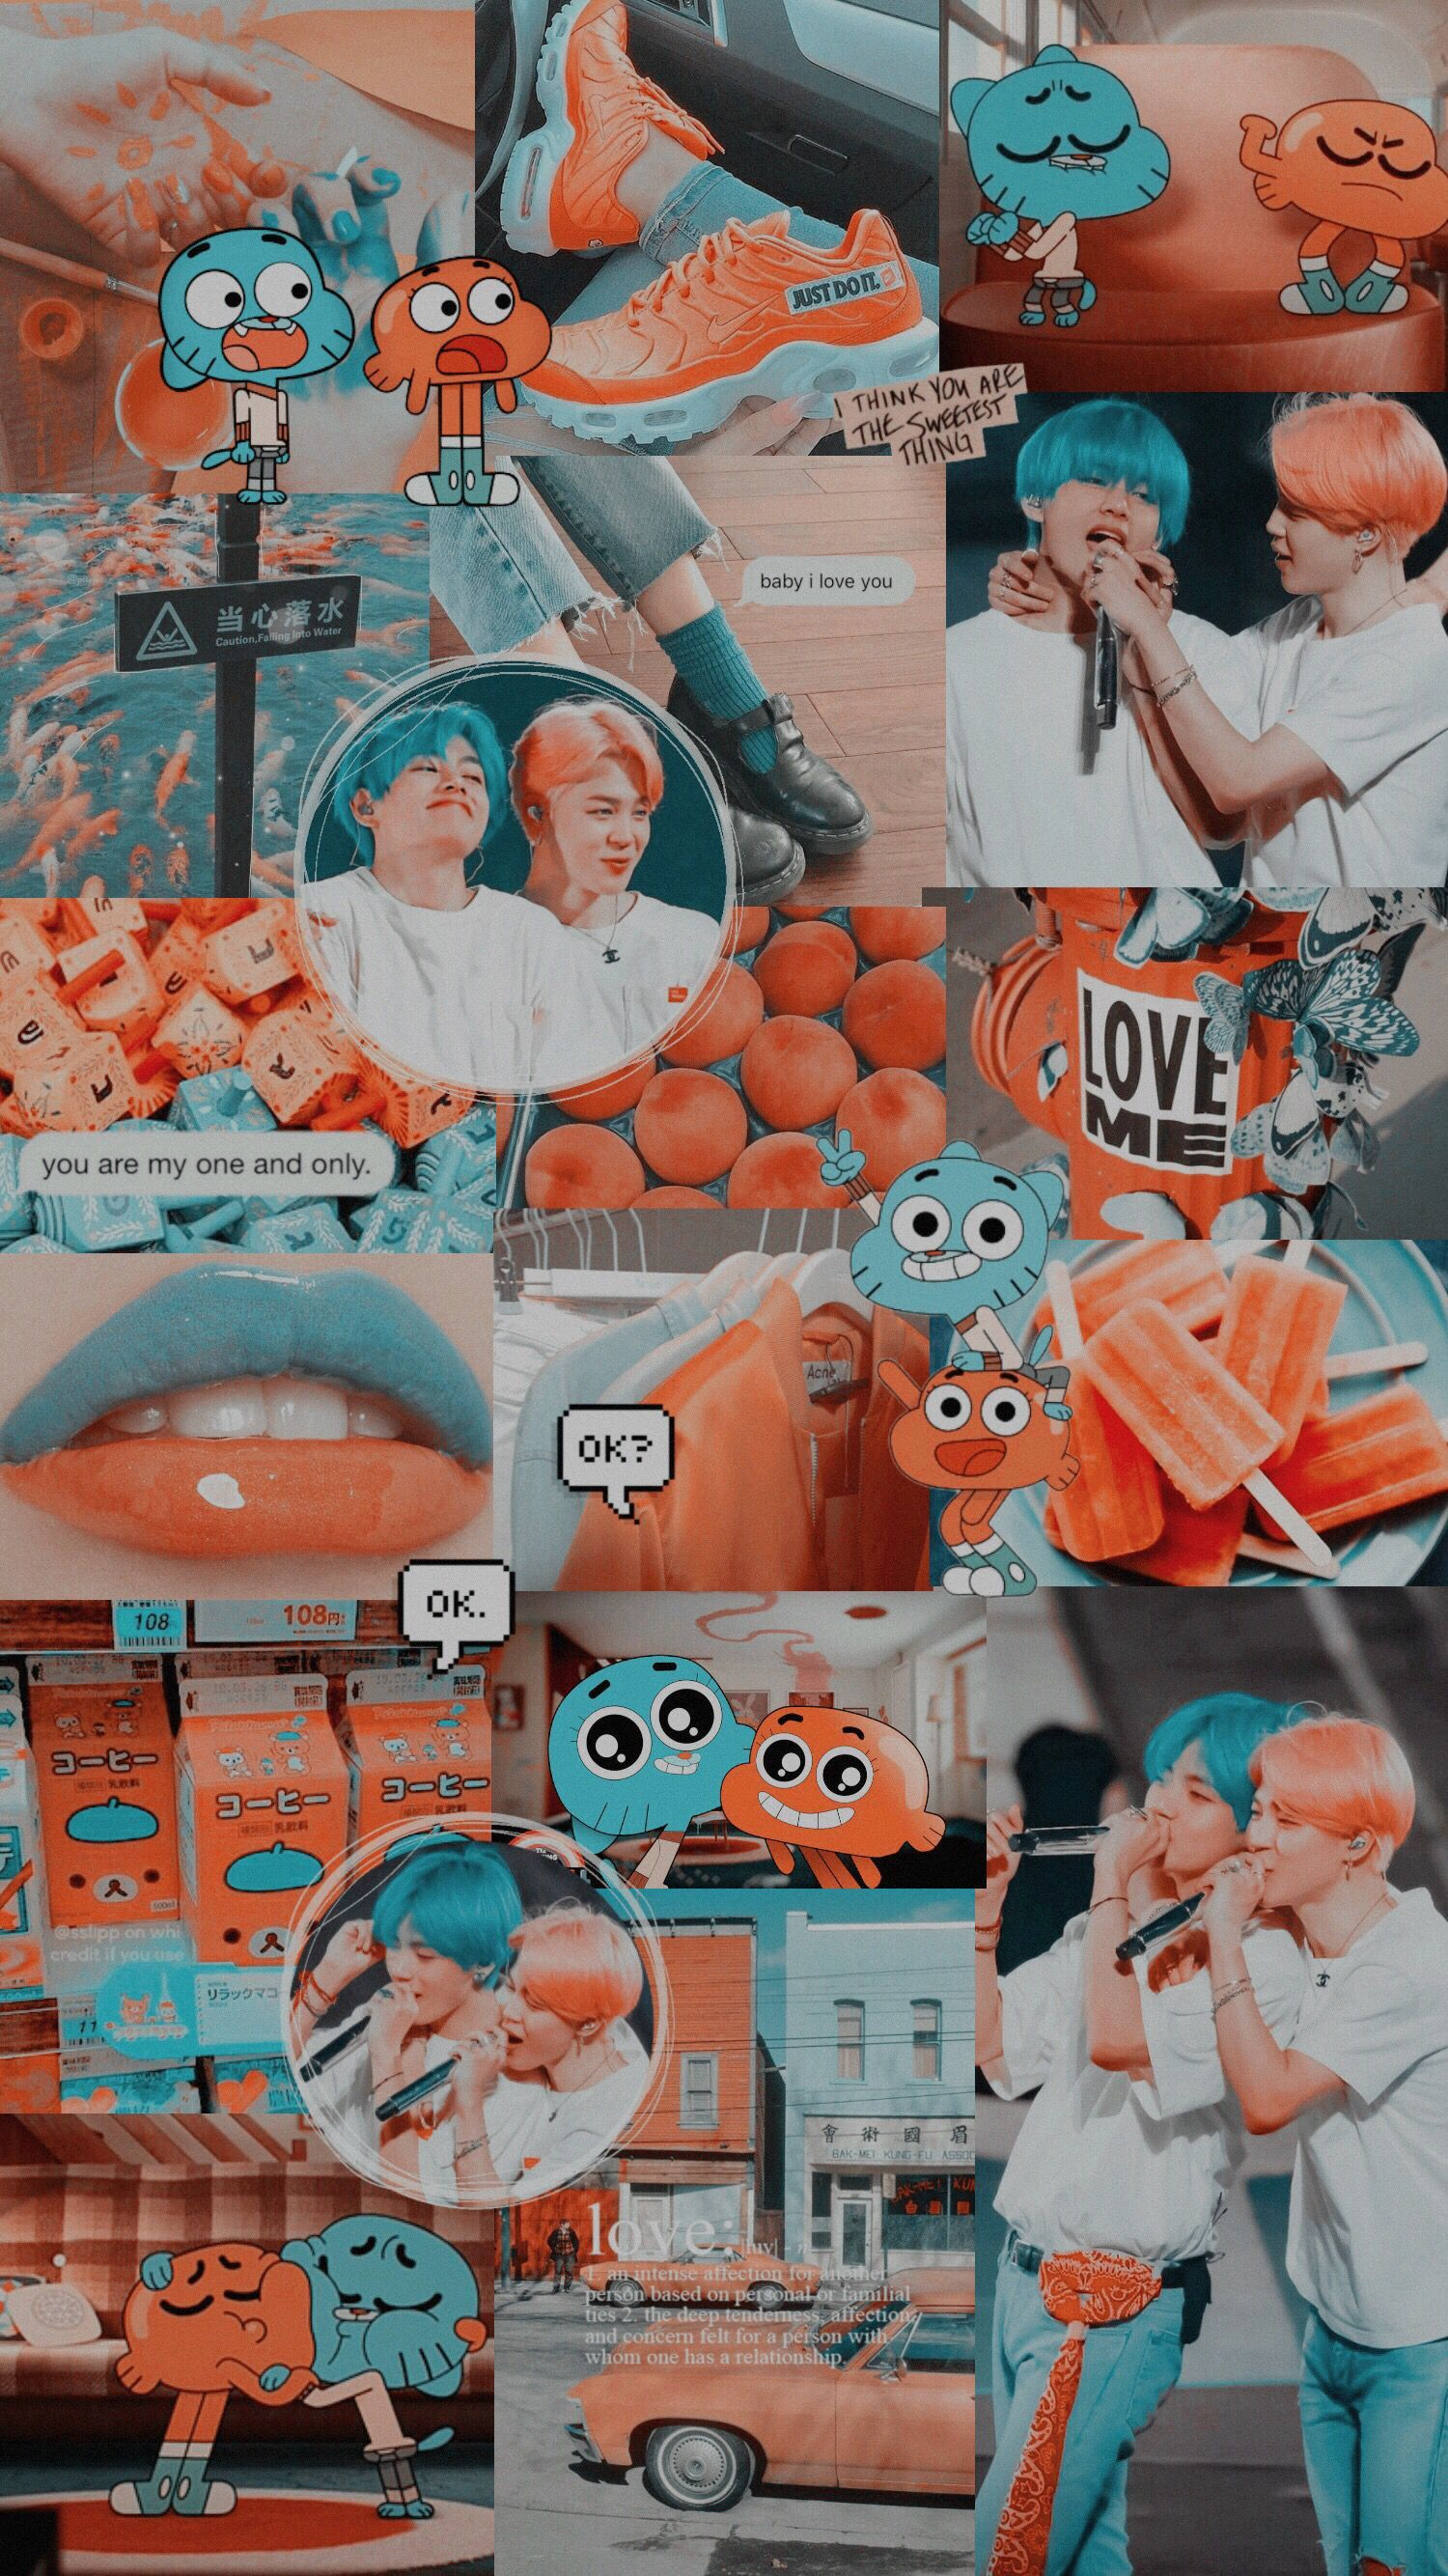 Vmin Jimin Taehyung V Wallpaper Bts Lockscreen Darwin Gumball Aesthetic Blue Ora Anime Blog